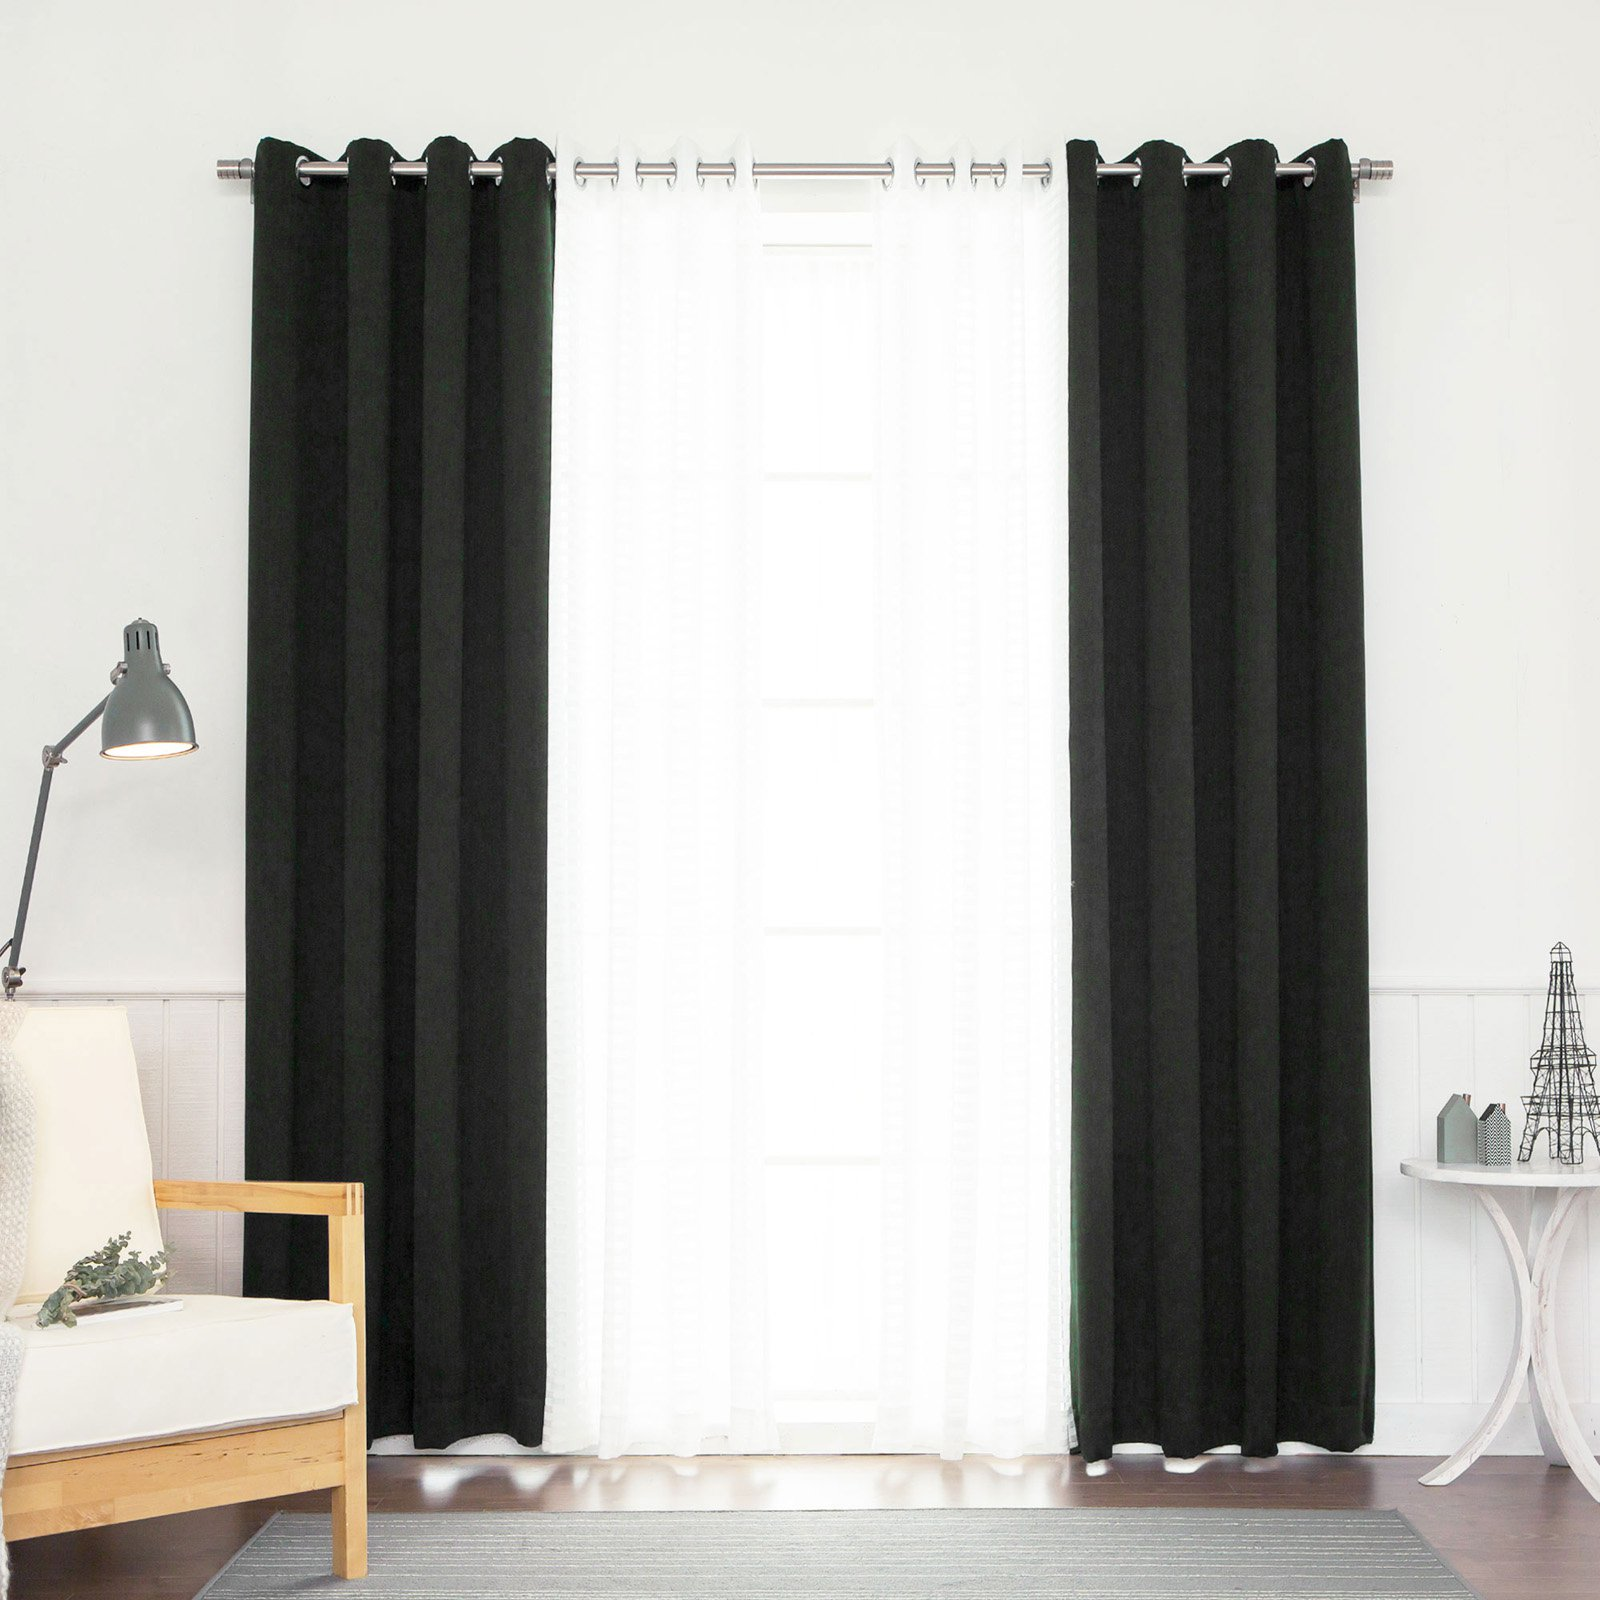 Best Home Fashion Coco Sheer and Solid Blackout Mix & Match Curtain Set - Set of 4